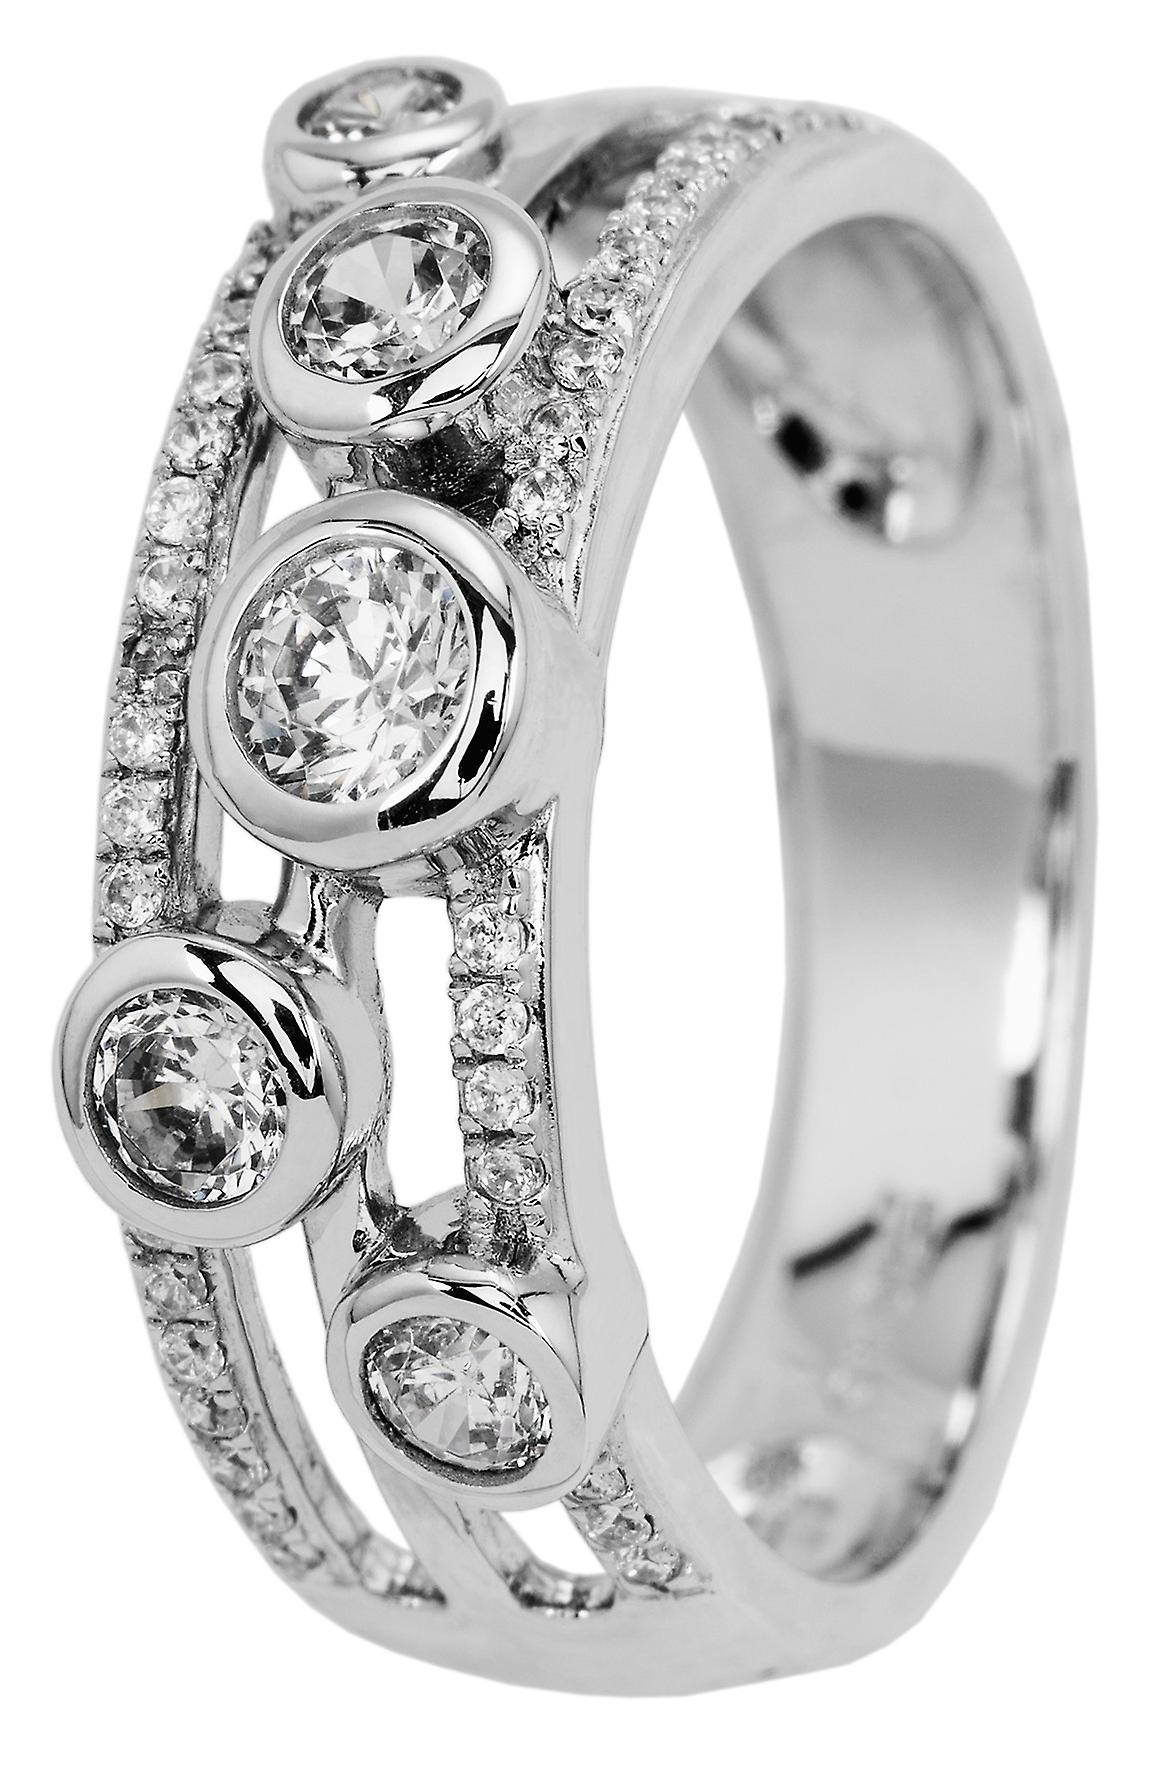 Carlo Monti women's ring JCM2007-111, 925 sterling silver rhodanized, white zirconia